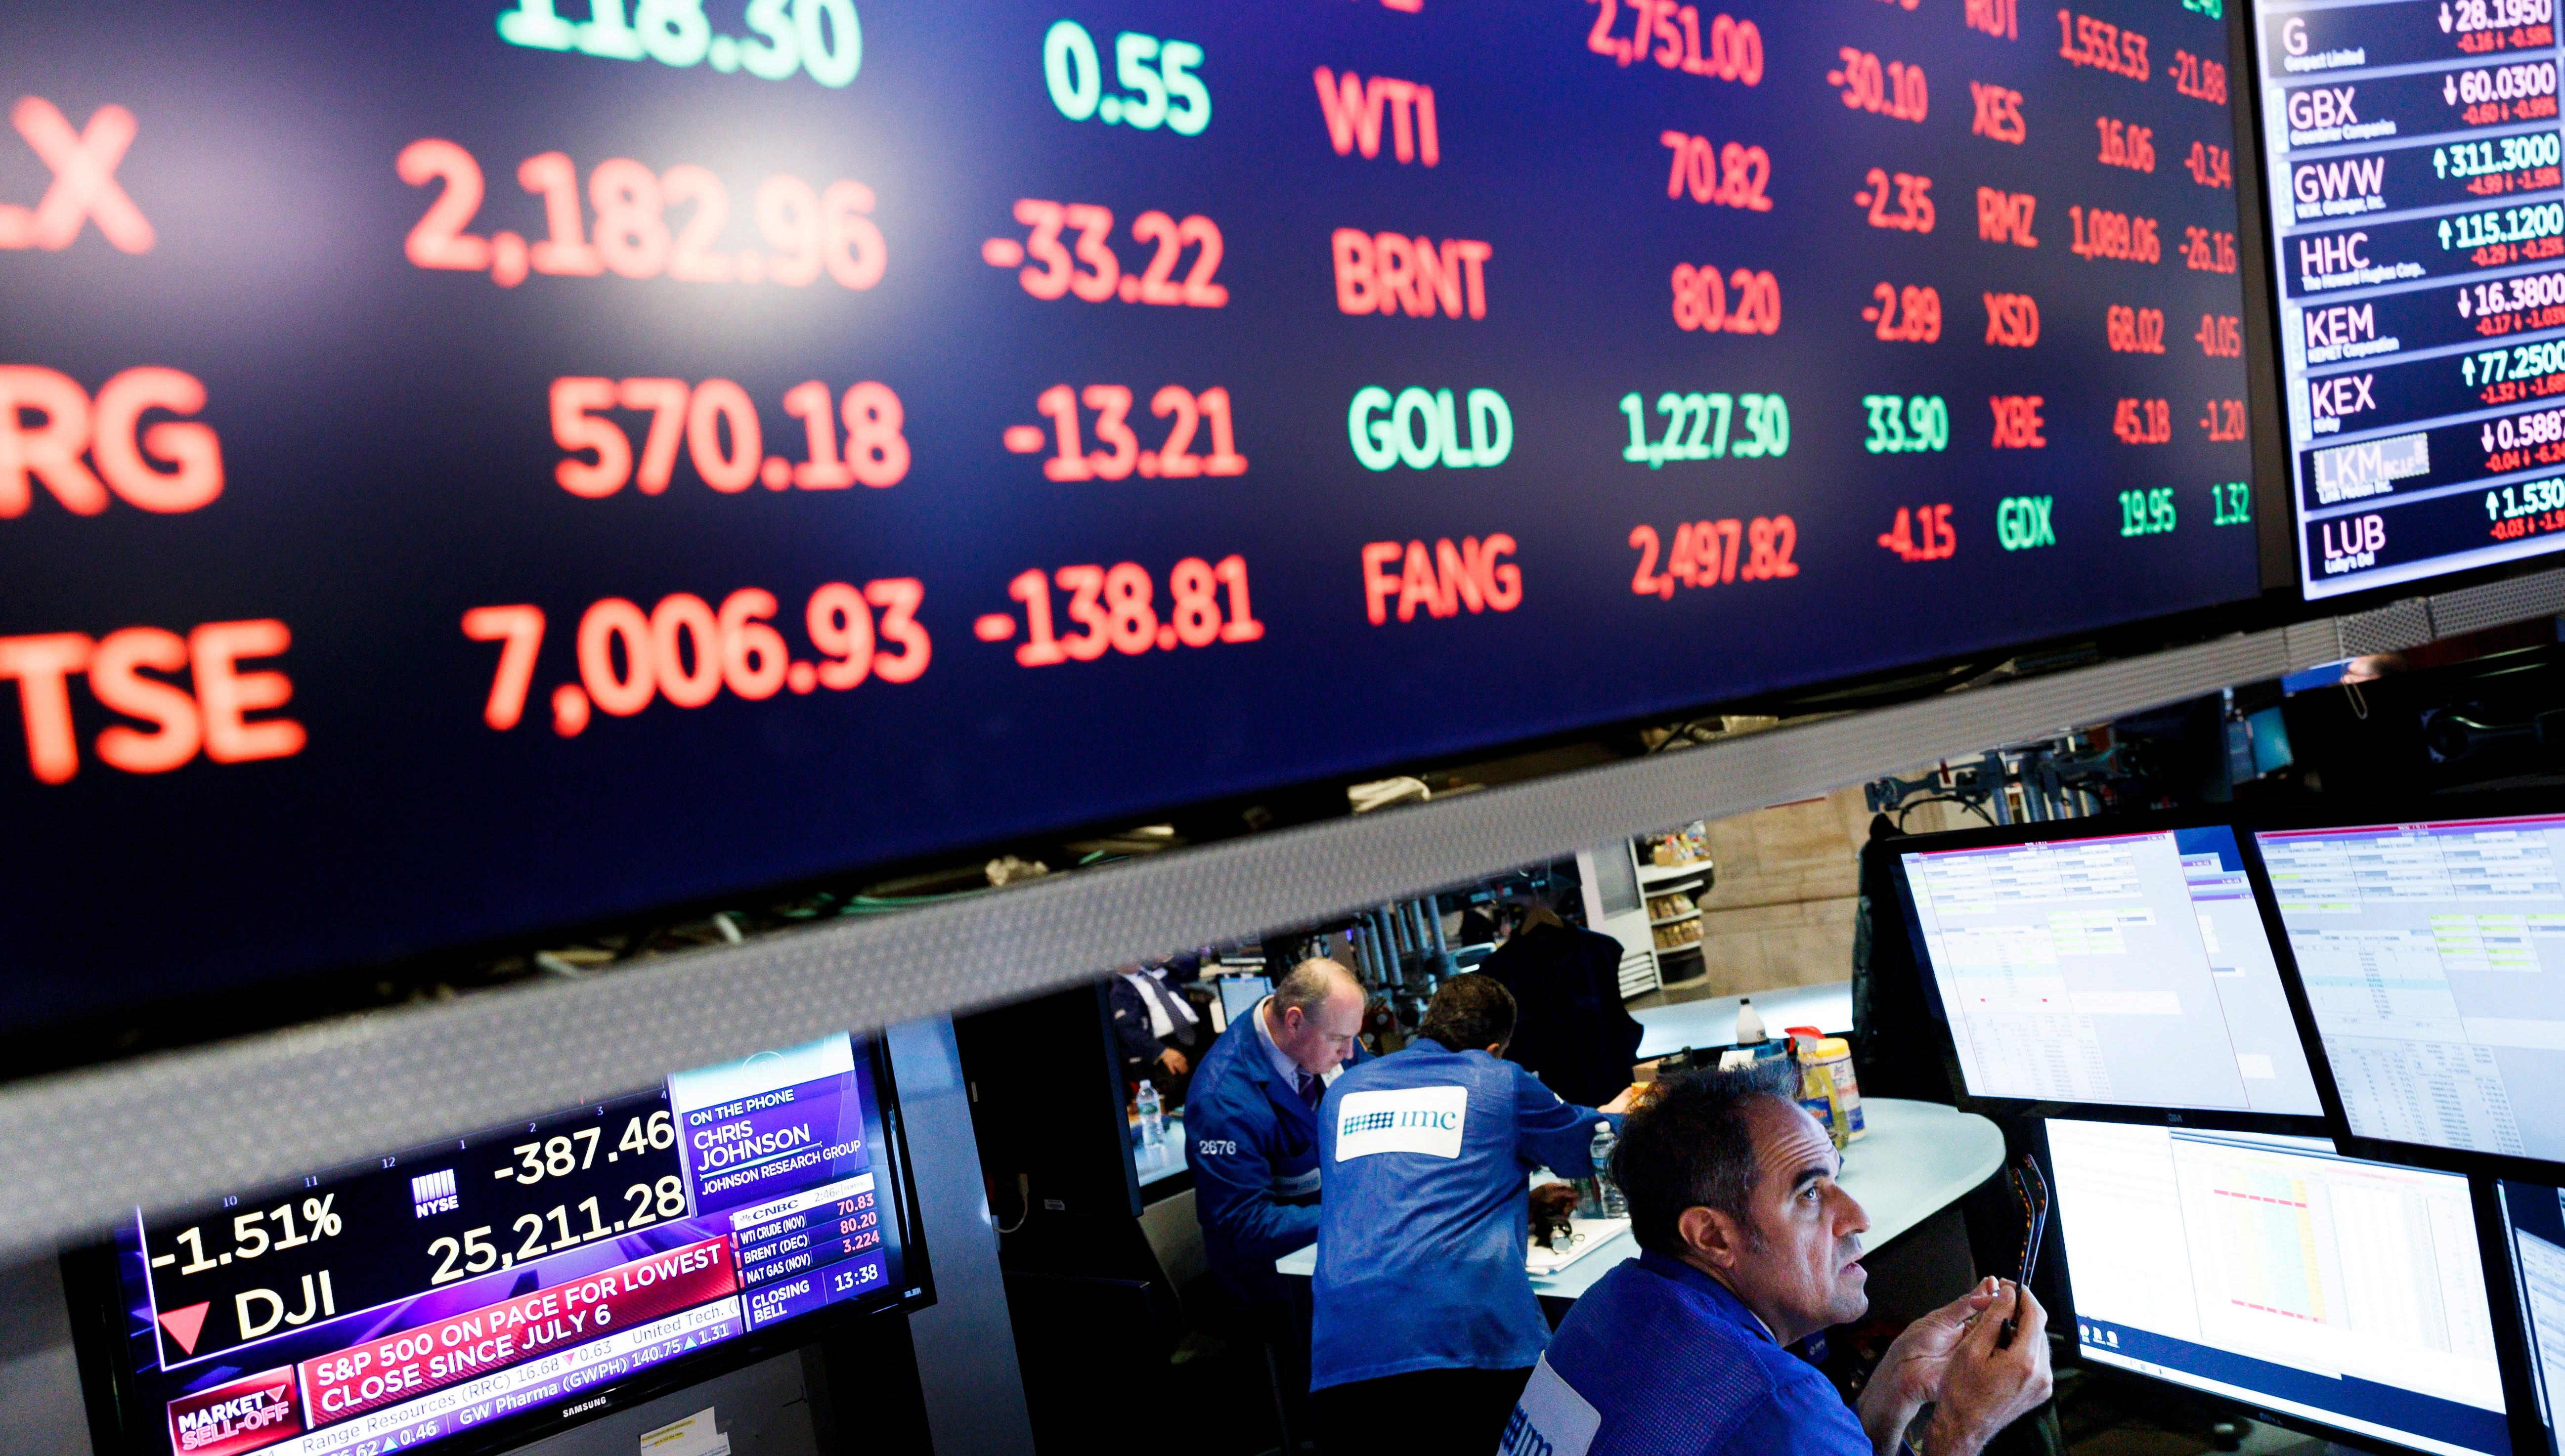 Stock market warning flags: potential trouble spots to watch